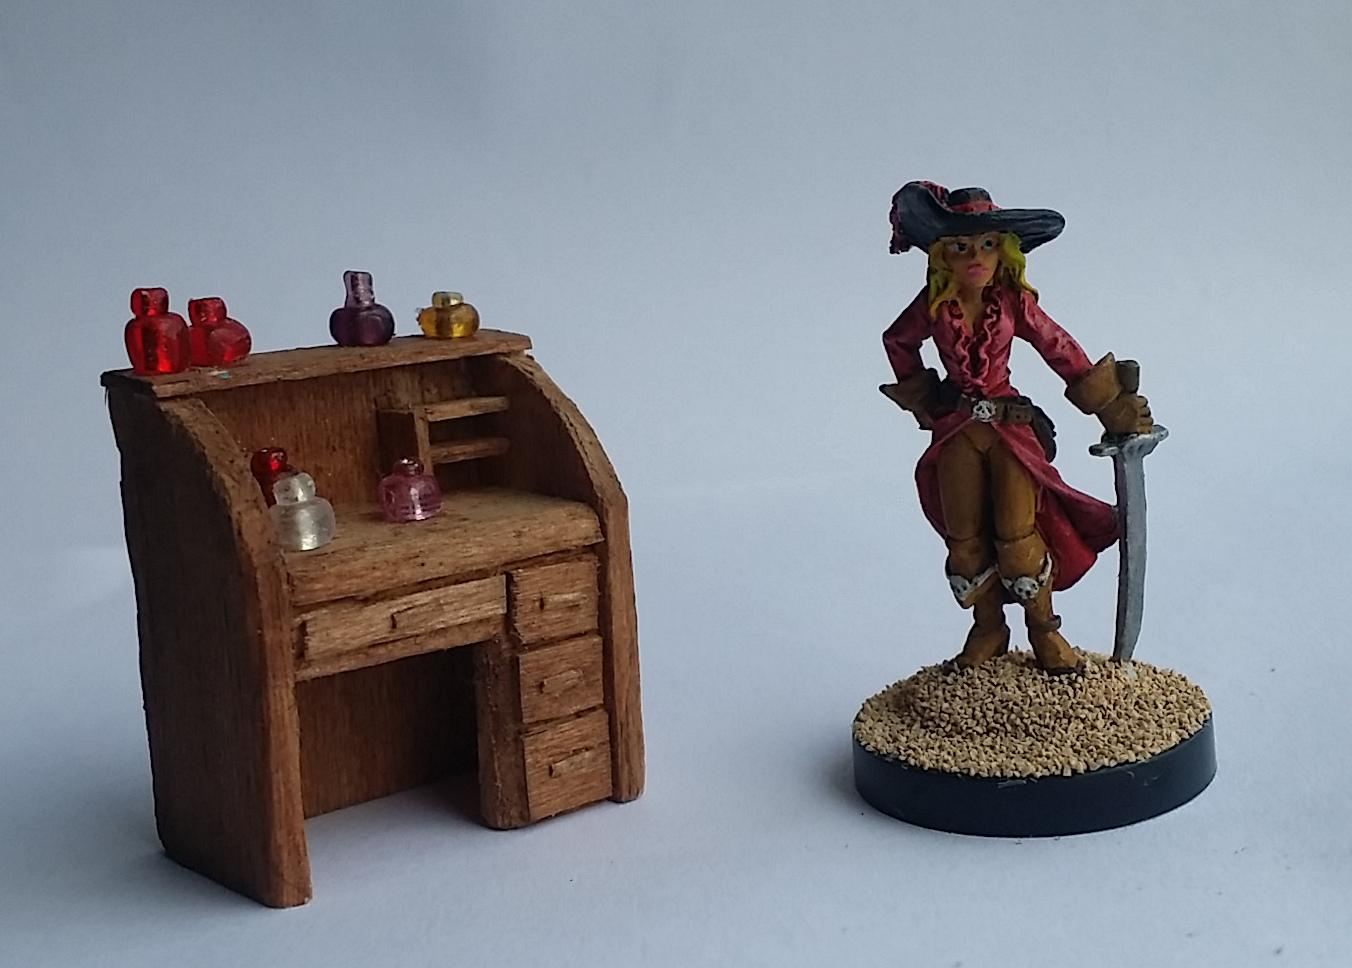 Desk, Pirate, Potions, Wood